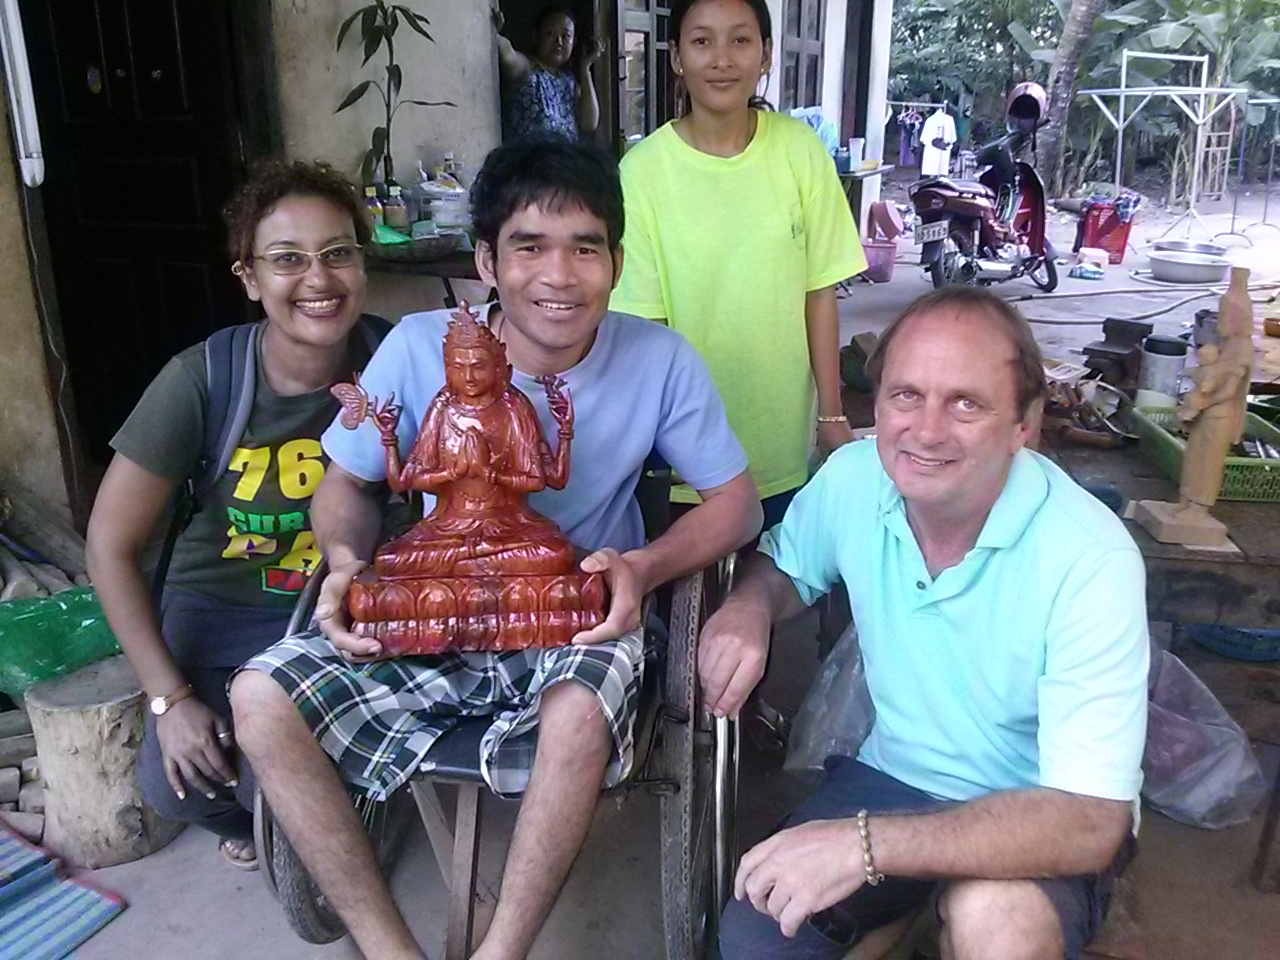 Jean du Plessis (spiritual teacher) in Cambodia with family